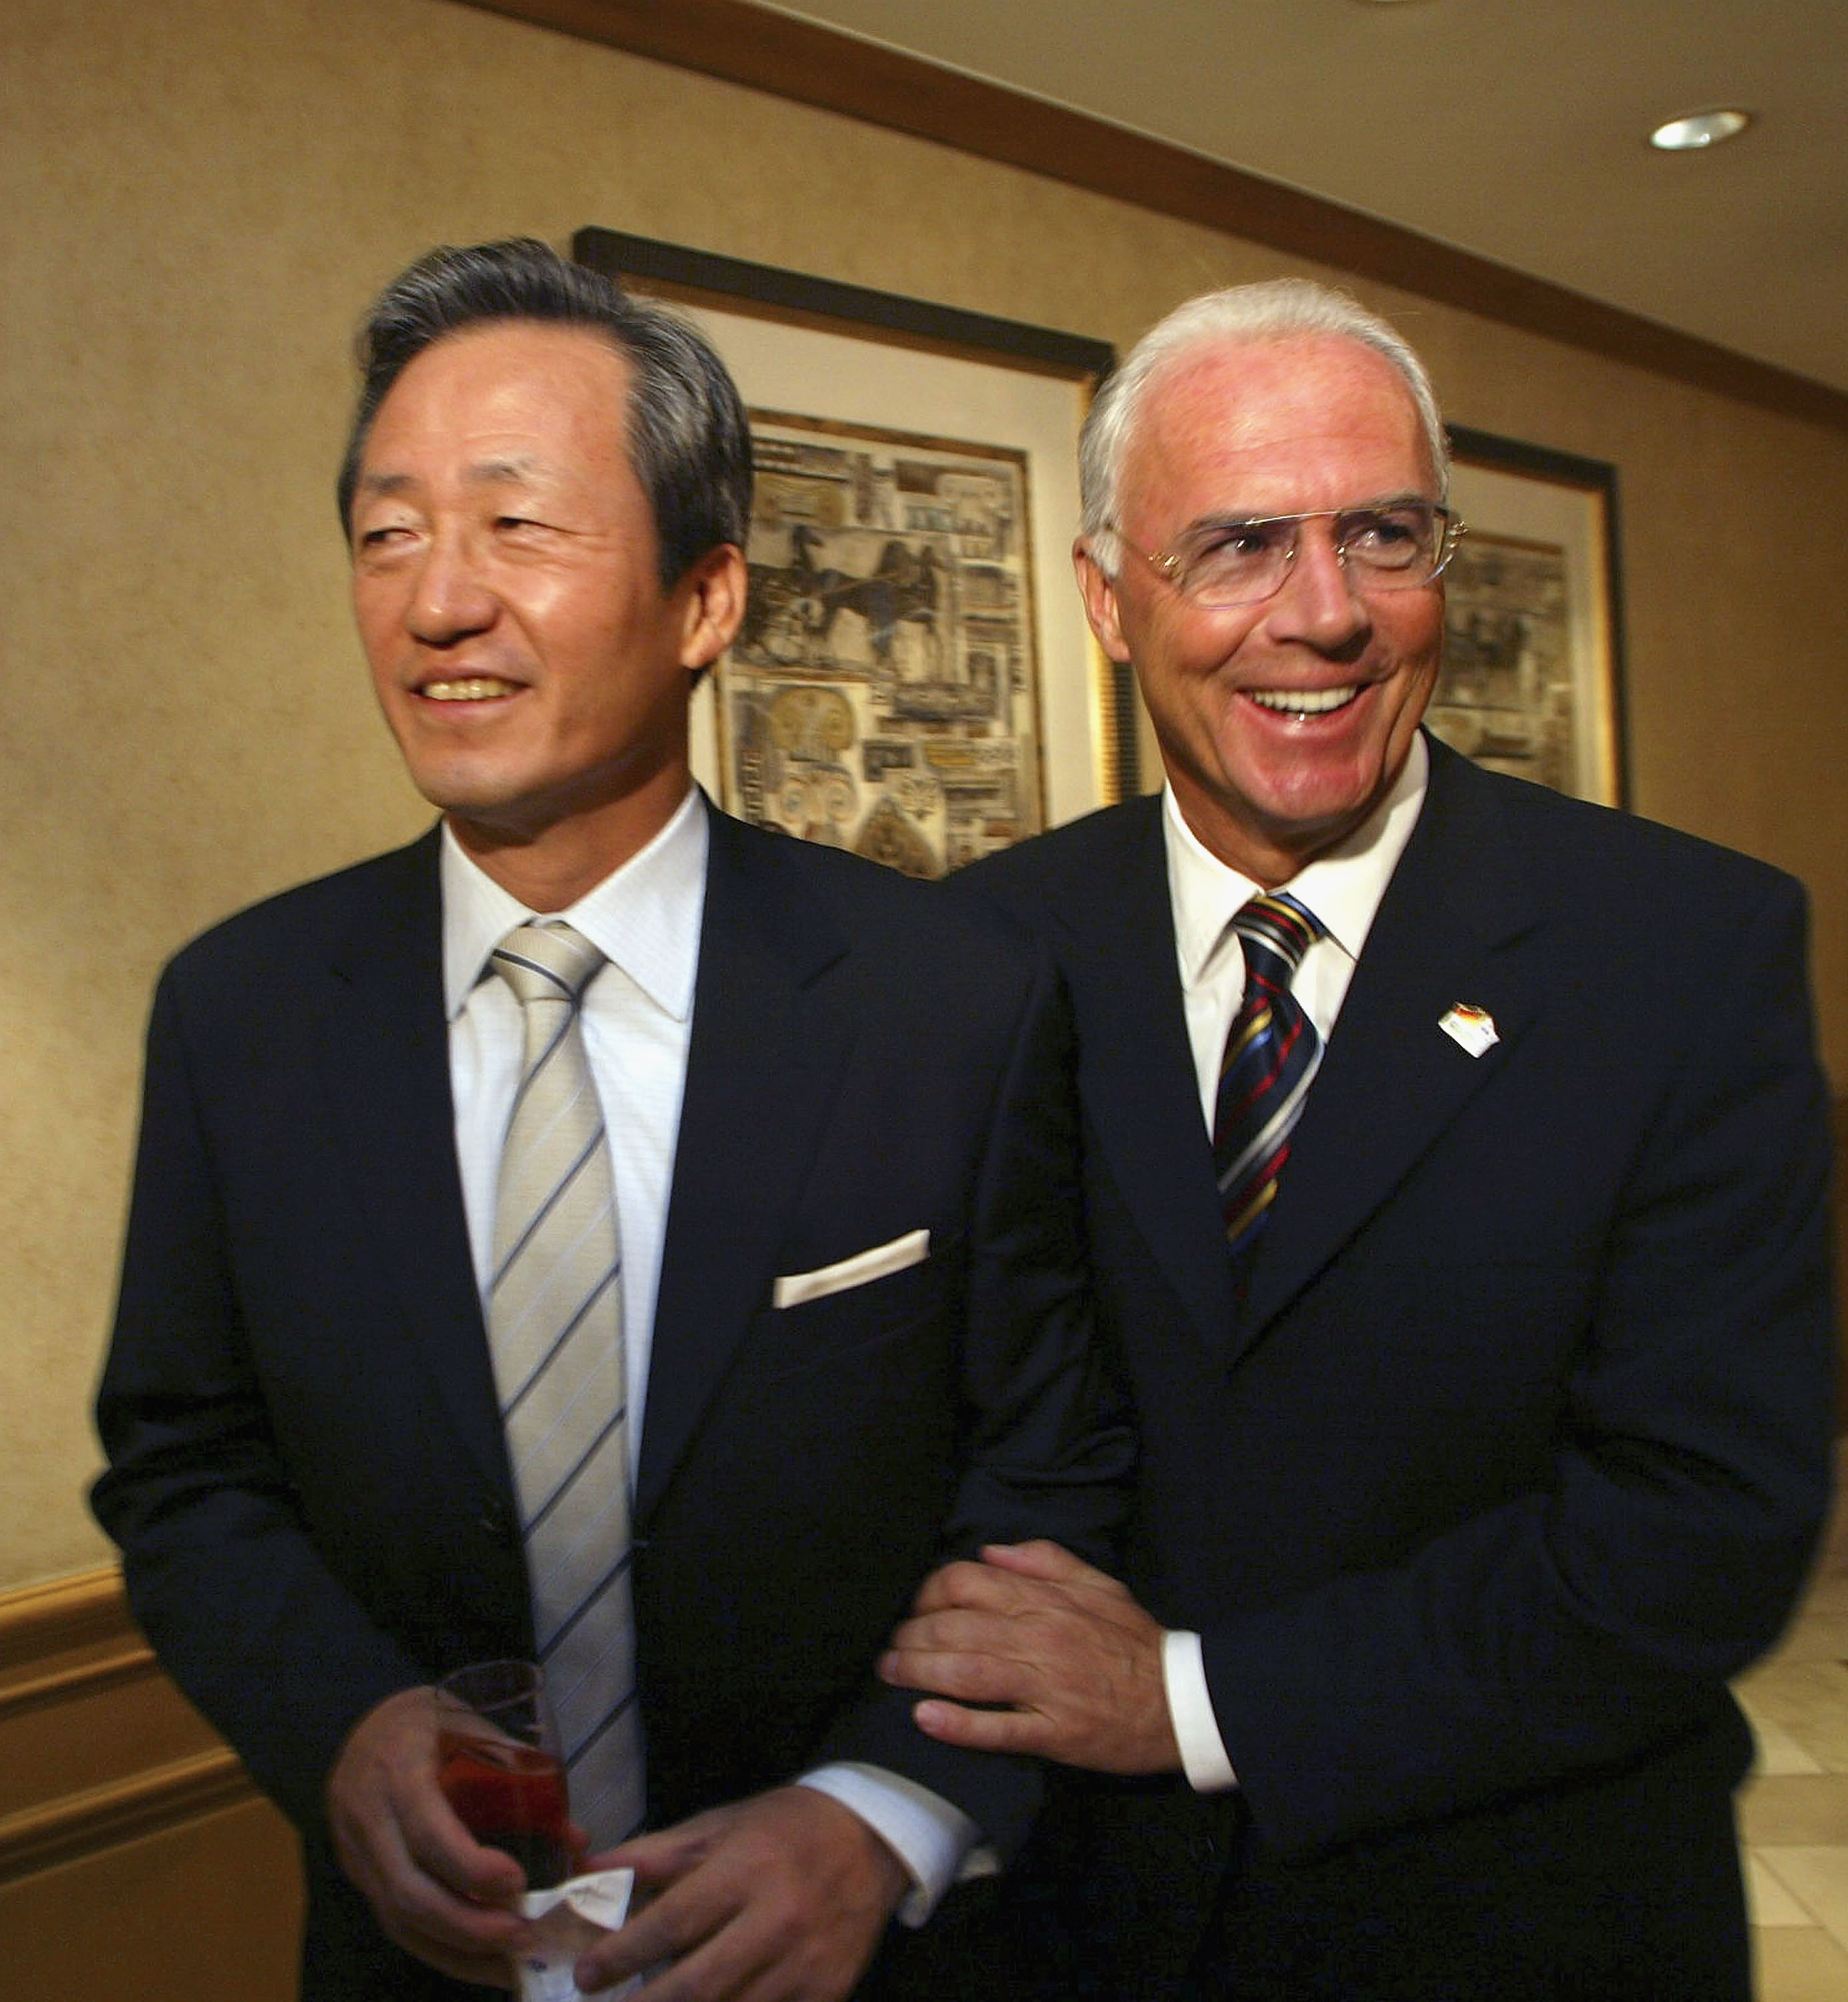 SEOUL, SOUTH KOREA - OCTOBER 5: Franz Beckenbauer (R), president of the 2006 Football World Cup organizing committee, jokes with Chung Mong-Joon, president of KFA (Korea Football Association) before a presentation session for 2006 Football World Cup on Oc